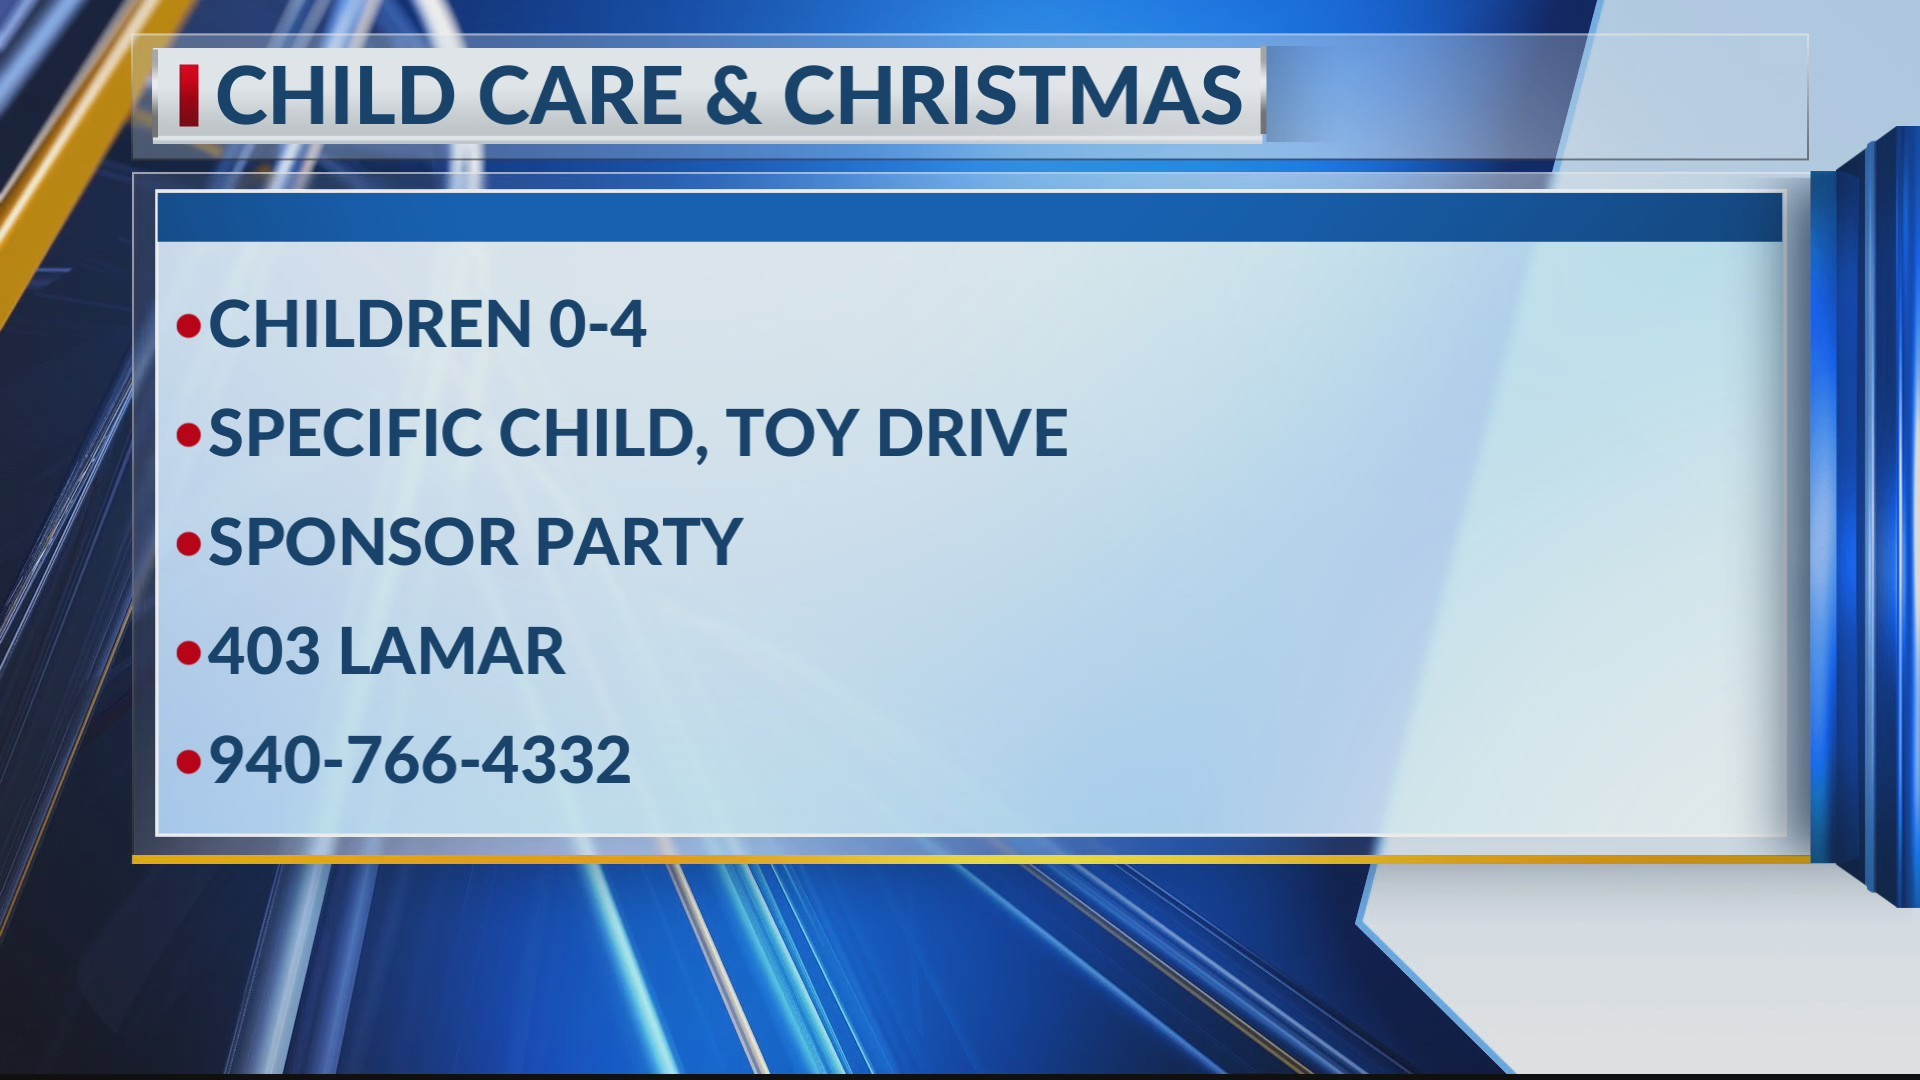 Child Care & Christmas